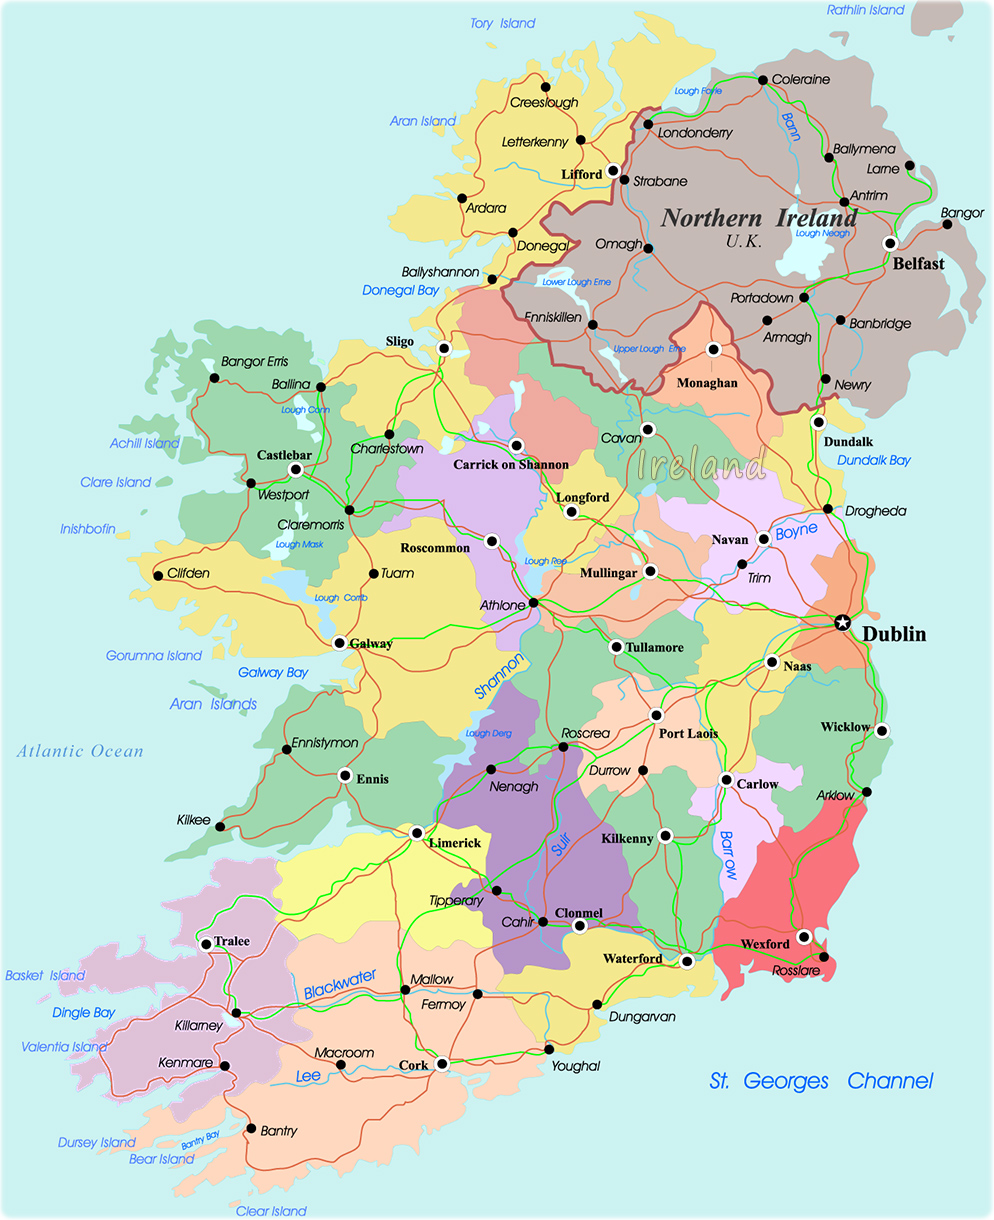 Regional Map Of Ireland.Ireland Political Regional Map Ireland Map Geography Political